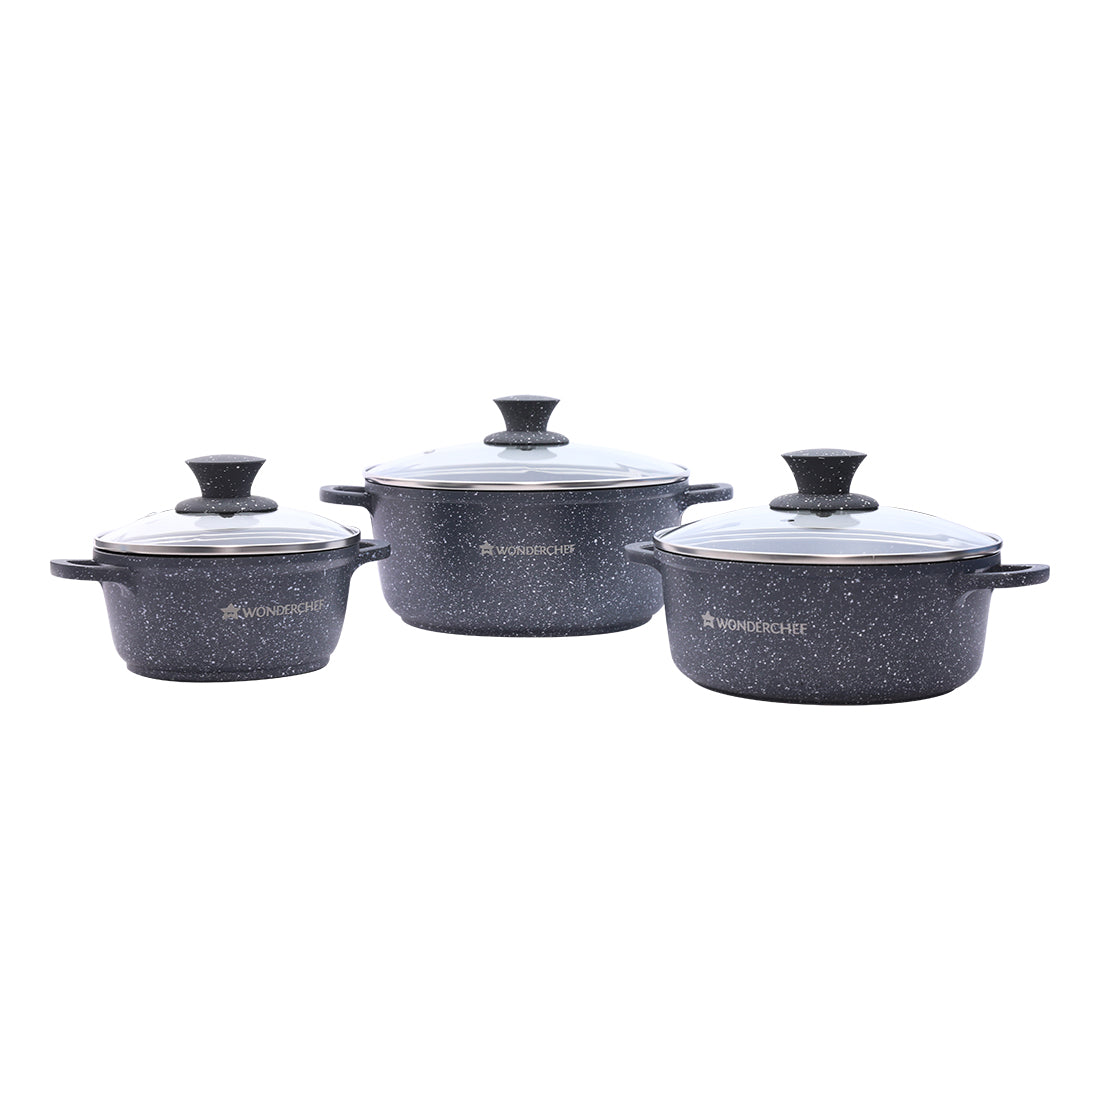 Granite Die-Cast Aluminium Nonstick Casserole Cookware Set 6Pc, Black